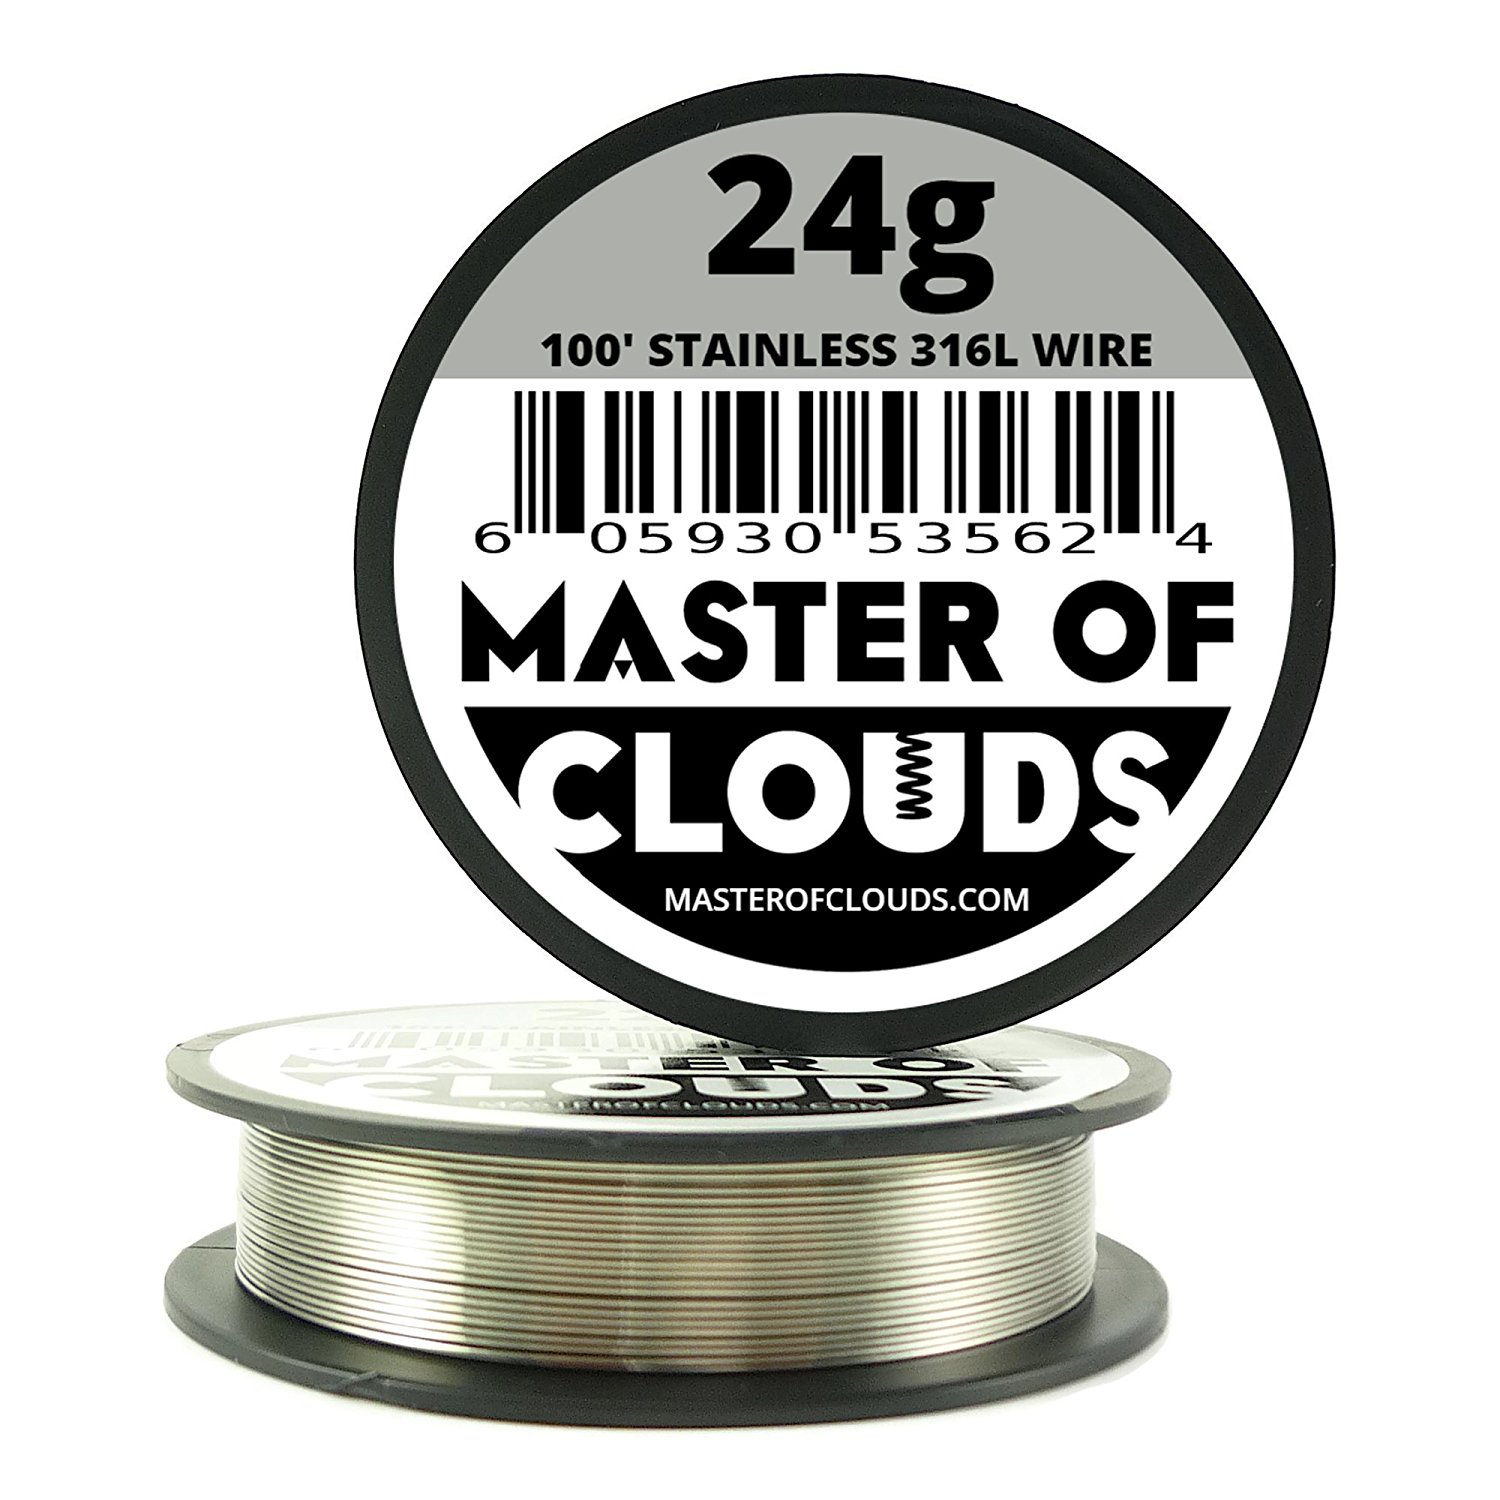 Ss 316l 100 ft 24 gauge awg stainless steel resistance wire 051 24 gauge awg stainless steel resistance wire 051 mm 24g 100 walmart greentooth Gallery